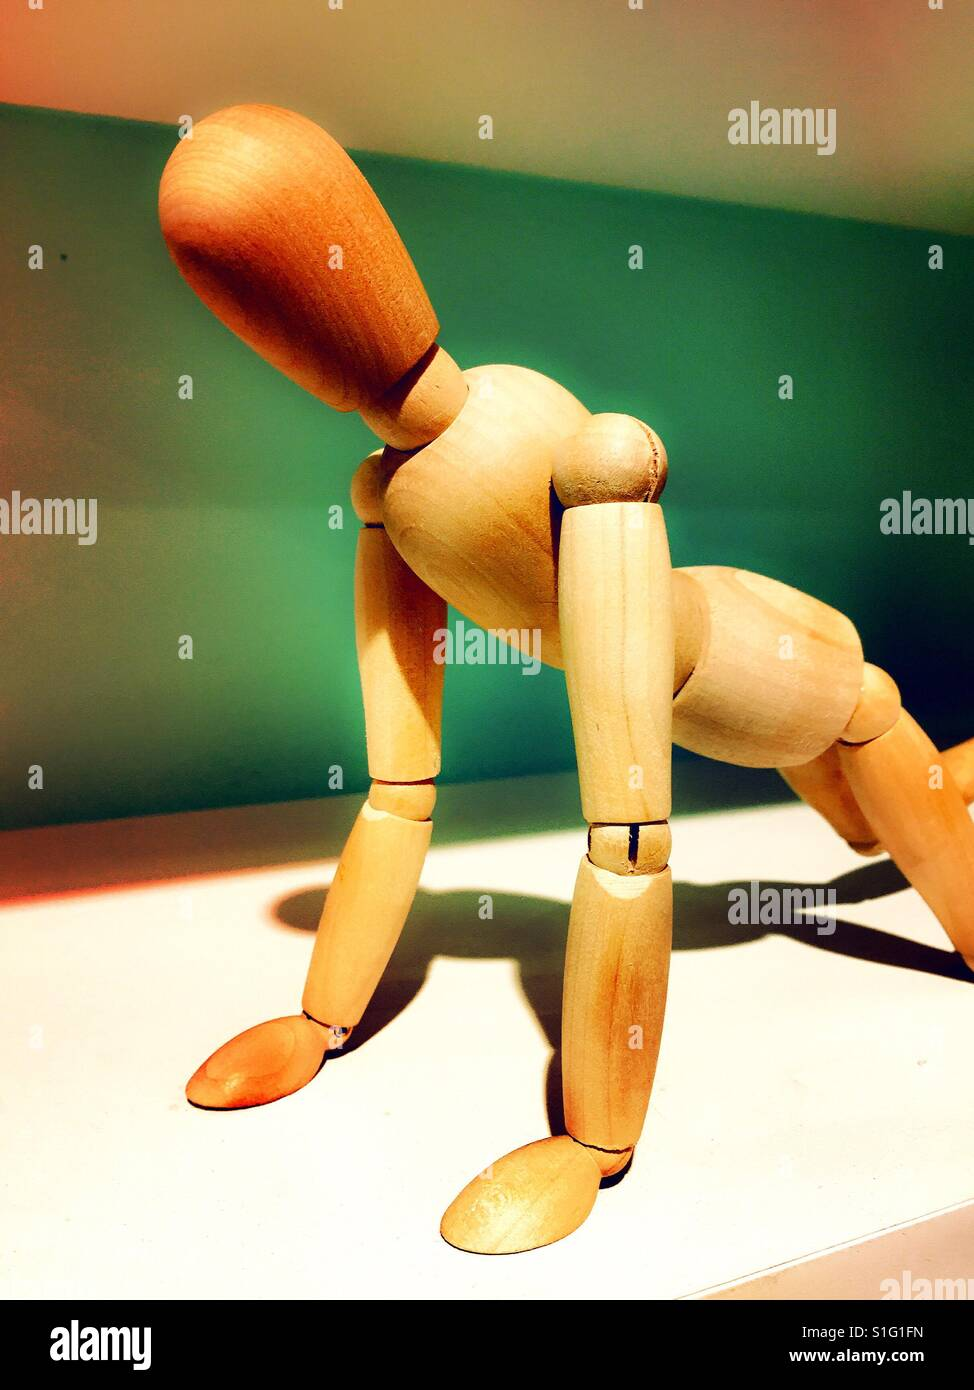 Missionary Position Stock Photos Missionary Position Stock Images